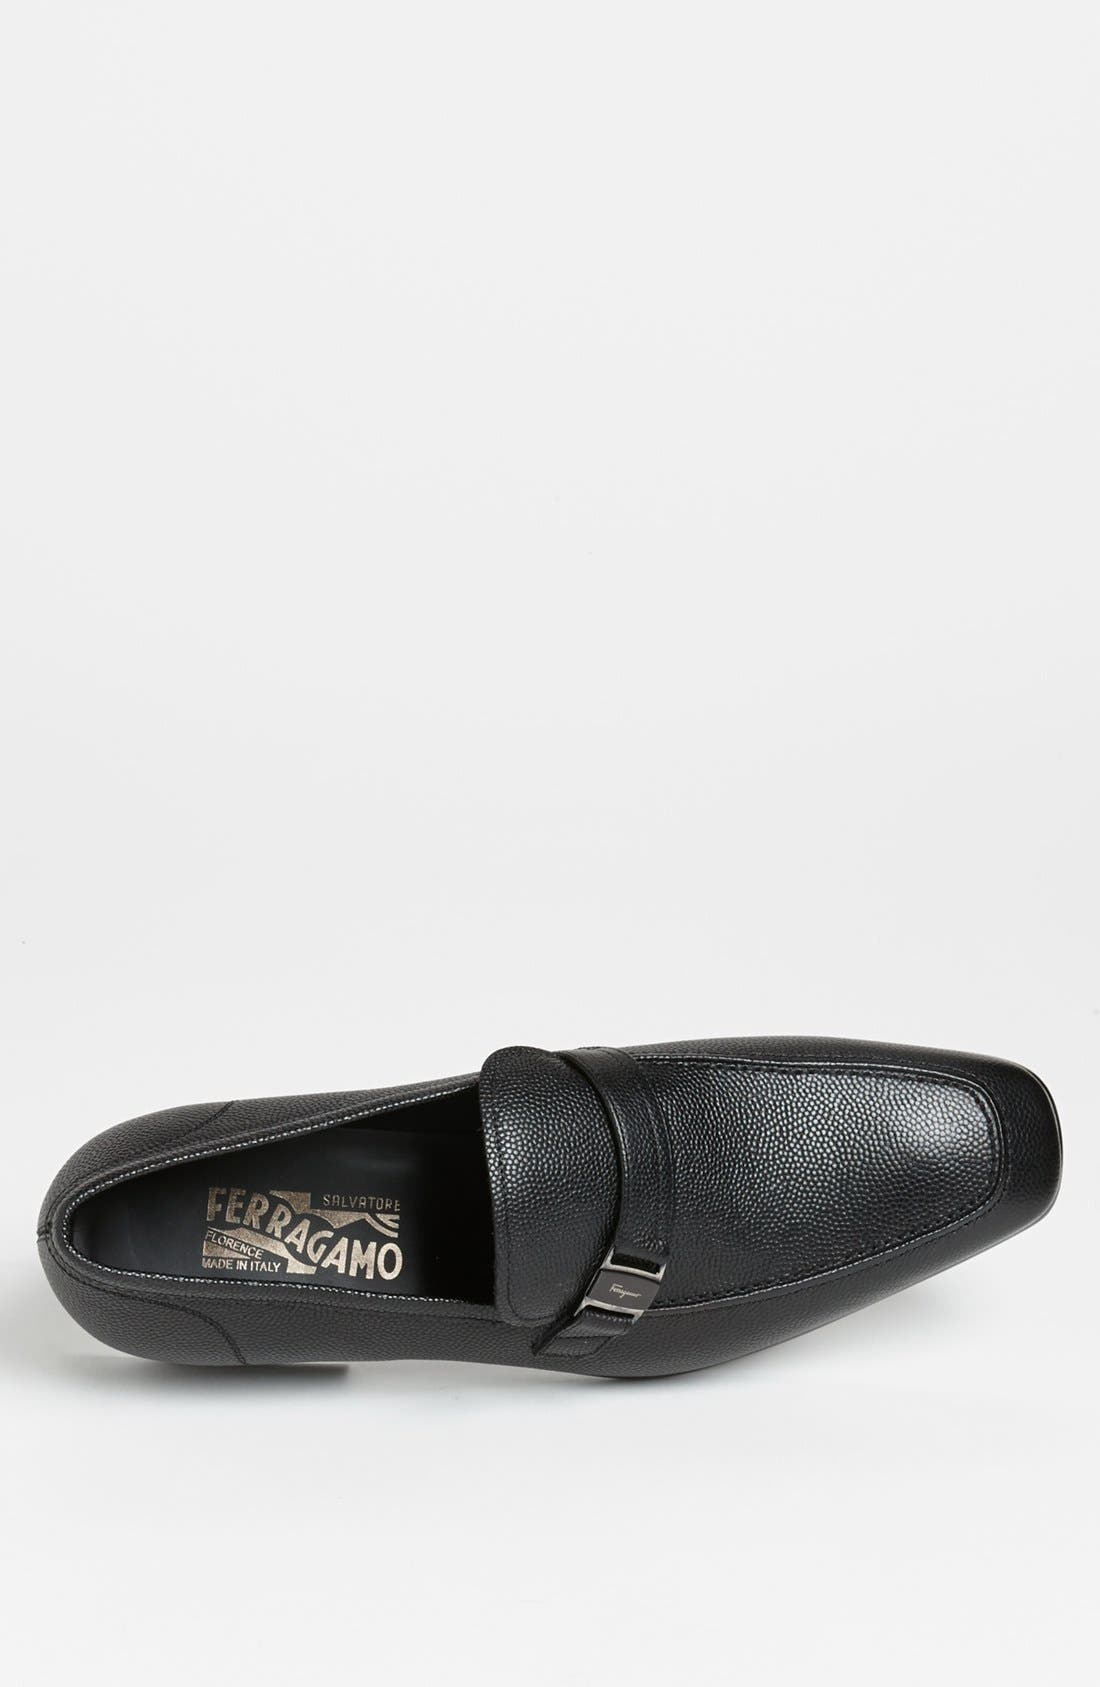 Alternate Image 3  - Salvatore Ferragamo 'Svezia' Loafer